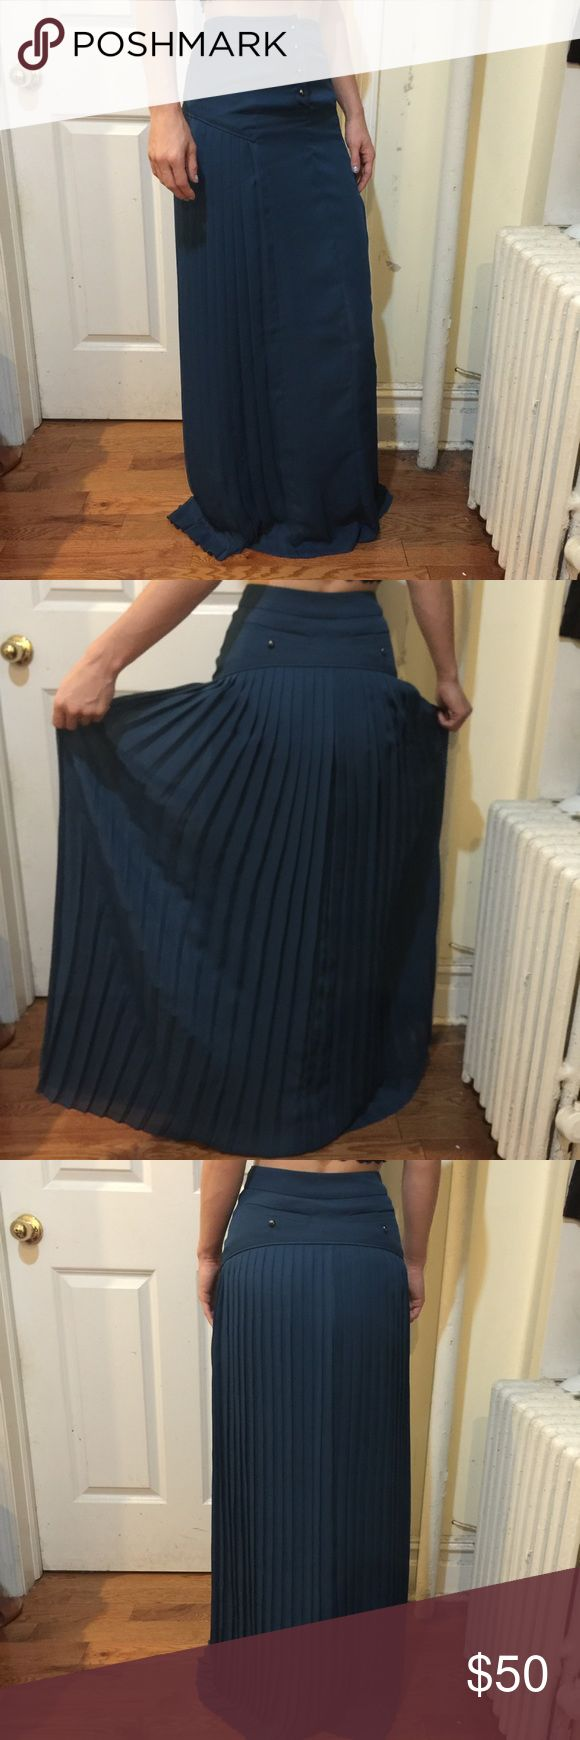 Reiss Signa Teal Pleated Maxi Skirt Reiss skirt in a beautiful shade of teal. Pleated all over and has a button closure set at the top center. Super flattering and has a liner inside. Size 0. Reiss Skirts Maxi